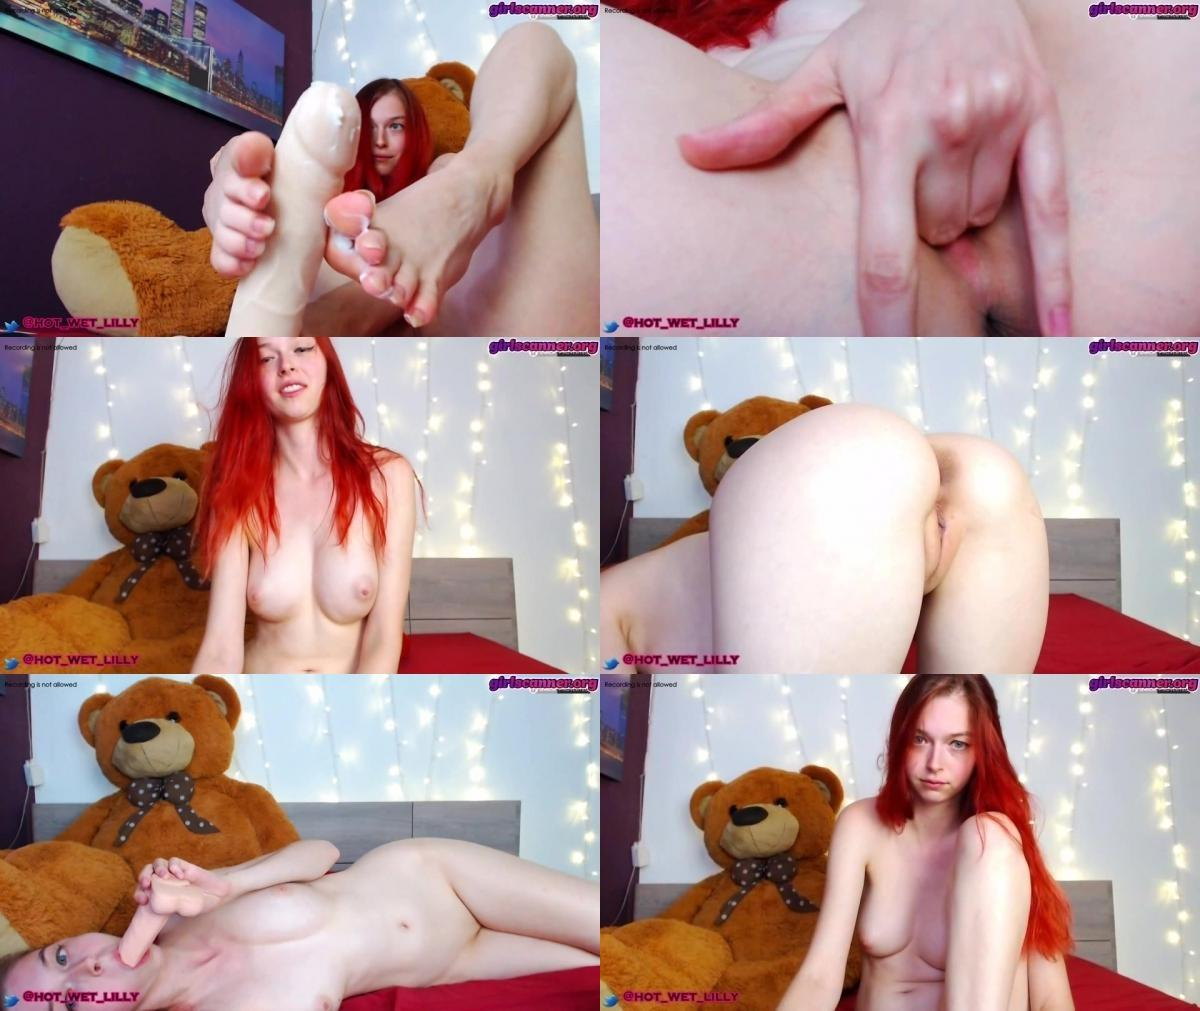 Hot_wet_lillys Chaturbate